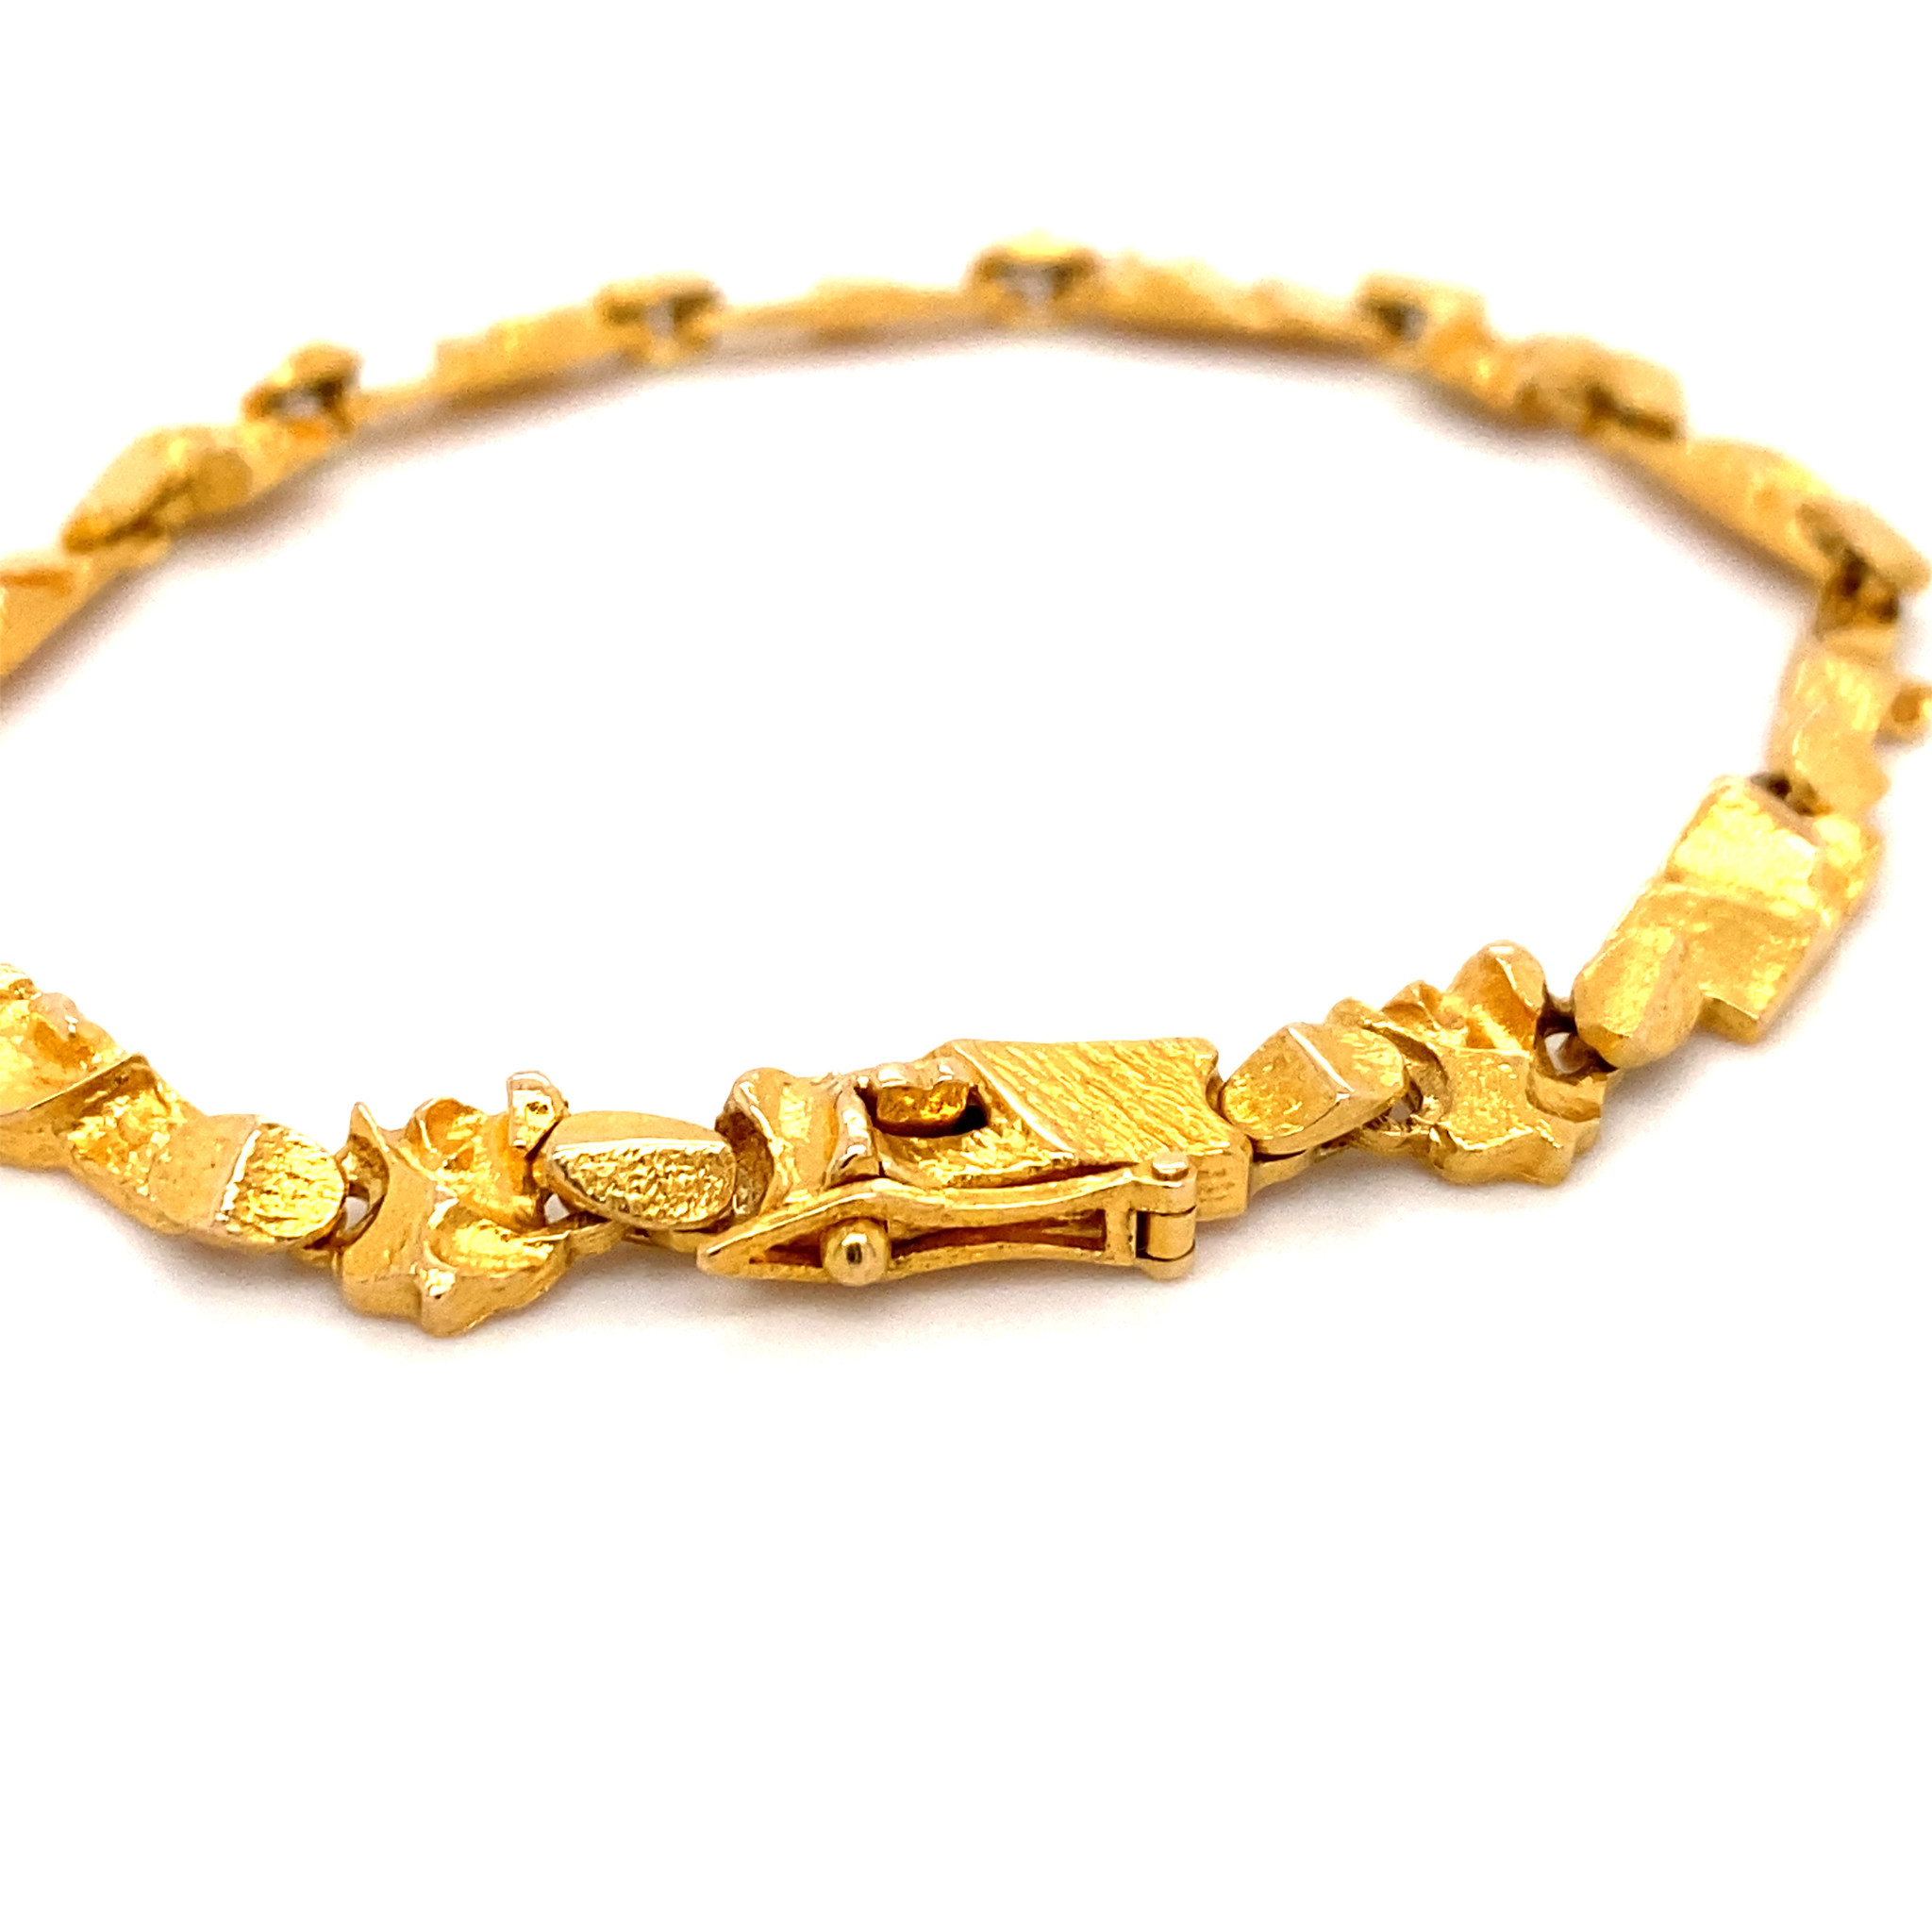 Lapponia Lapponia Tenochtitlan 14 krt. geelgouden armband 18,5 cm.